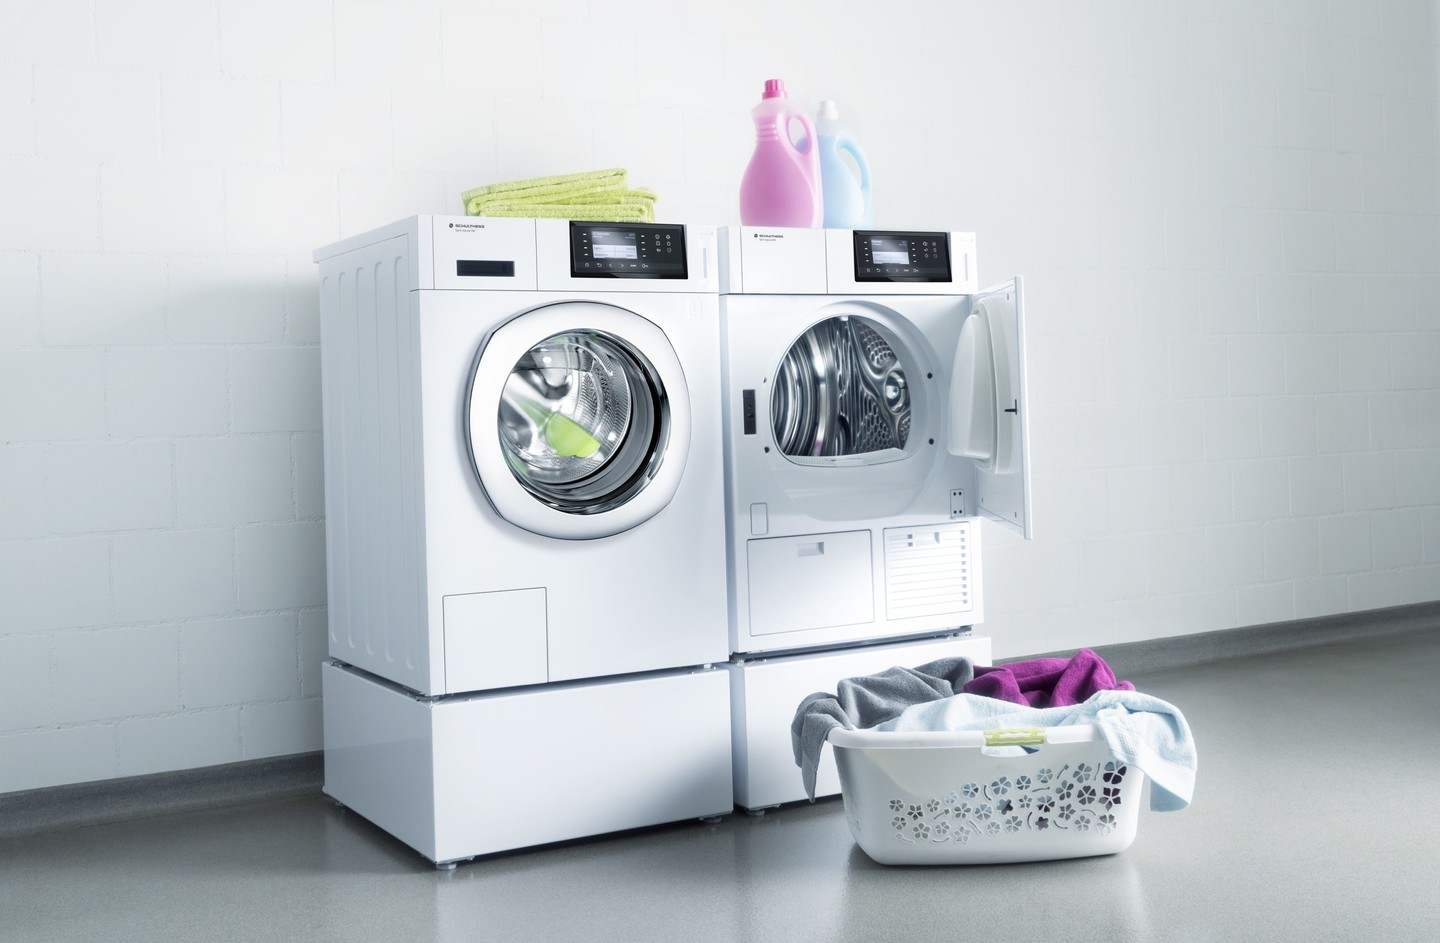 What to Look For in a New Washing Machine - Buying Tips ...